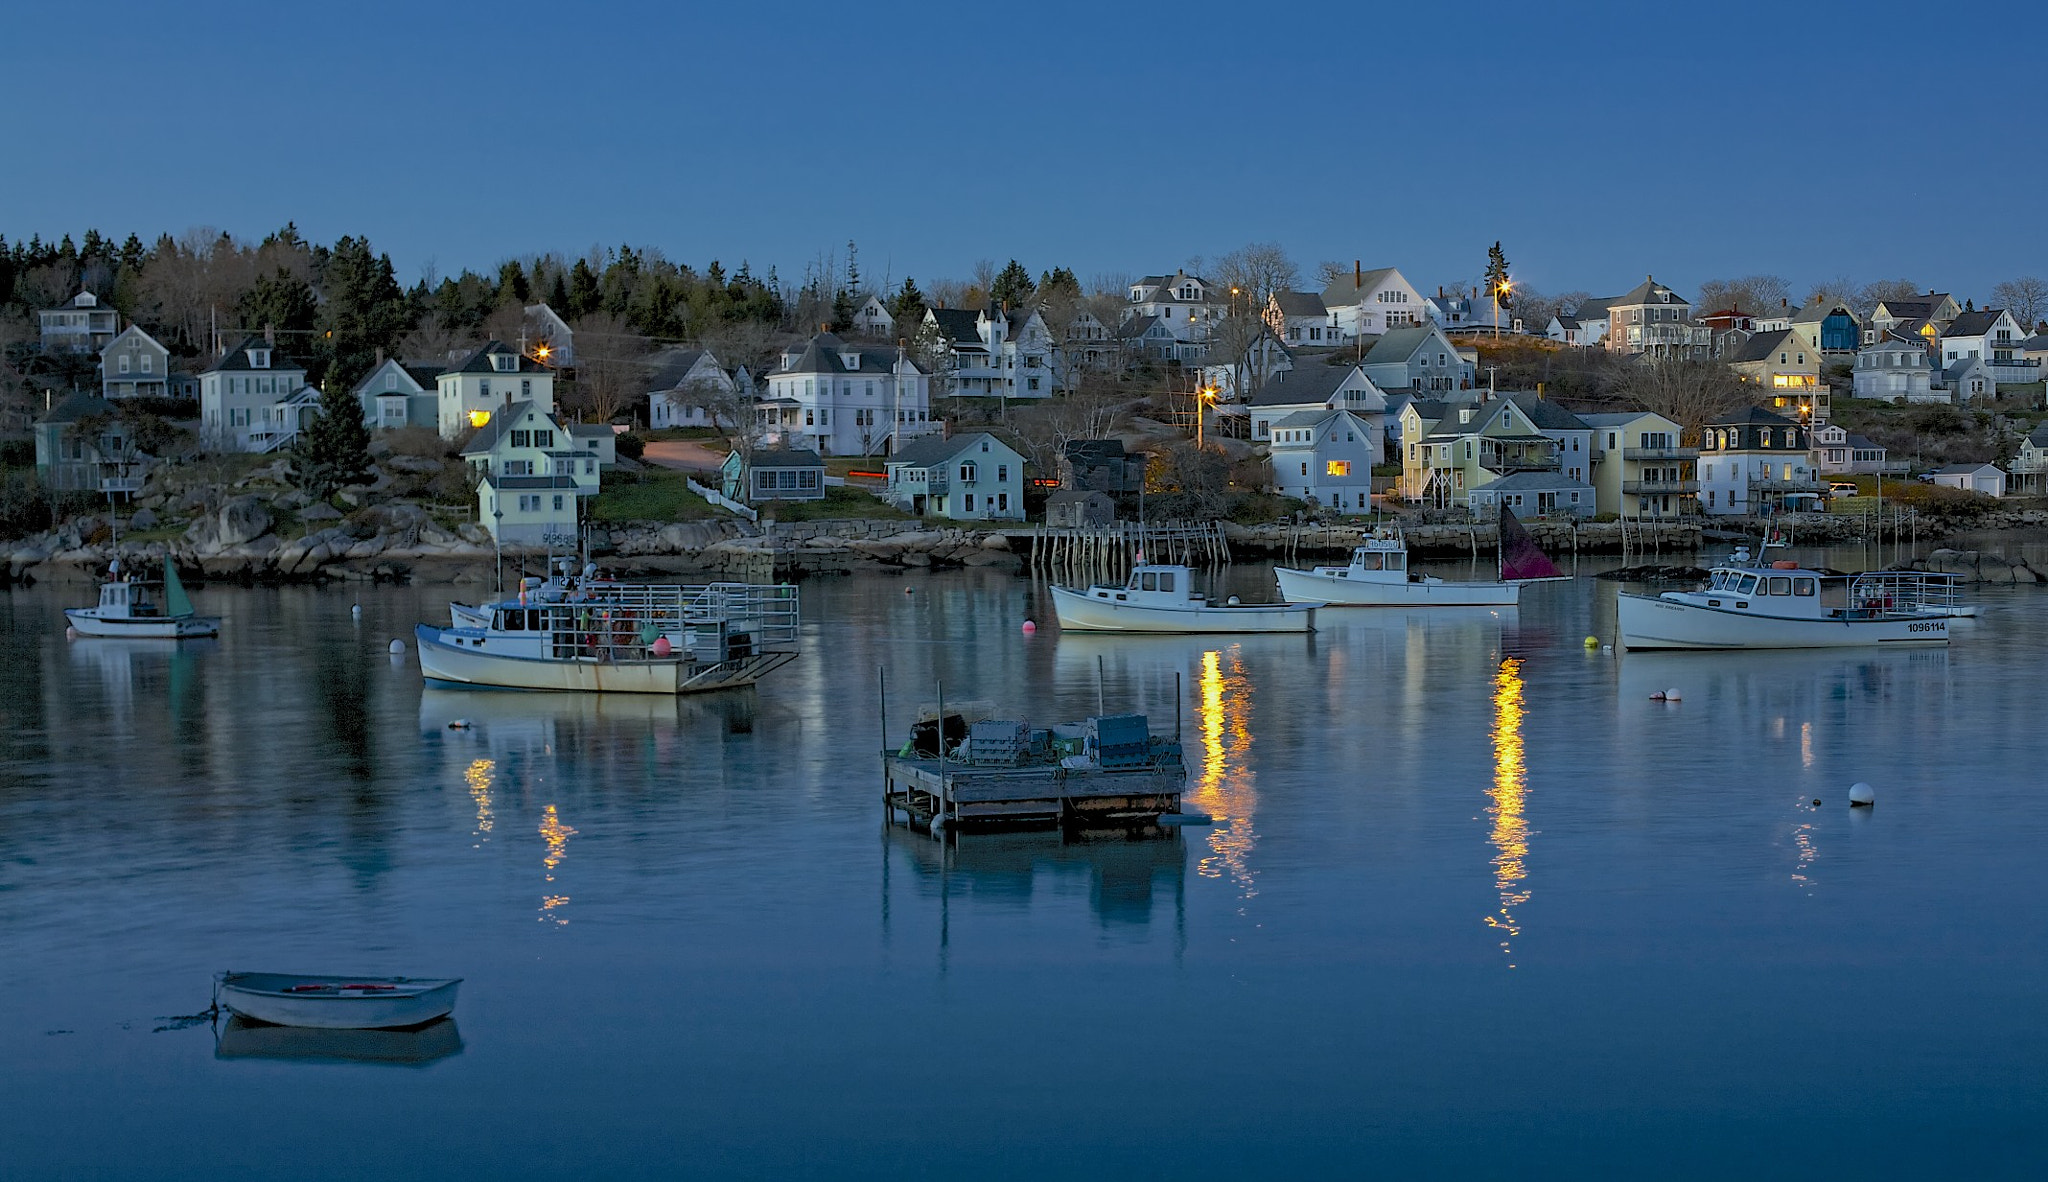 Photograph Quiet harbor by Don Seymour on 500px